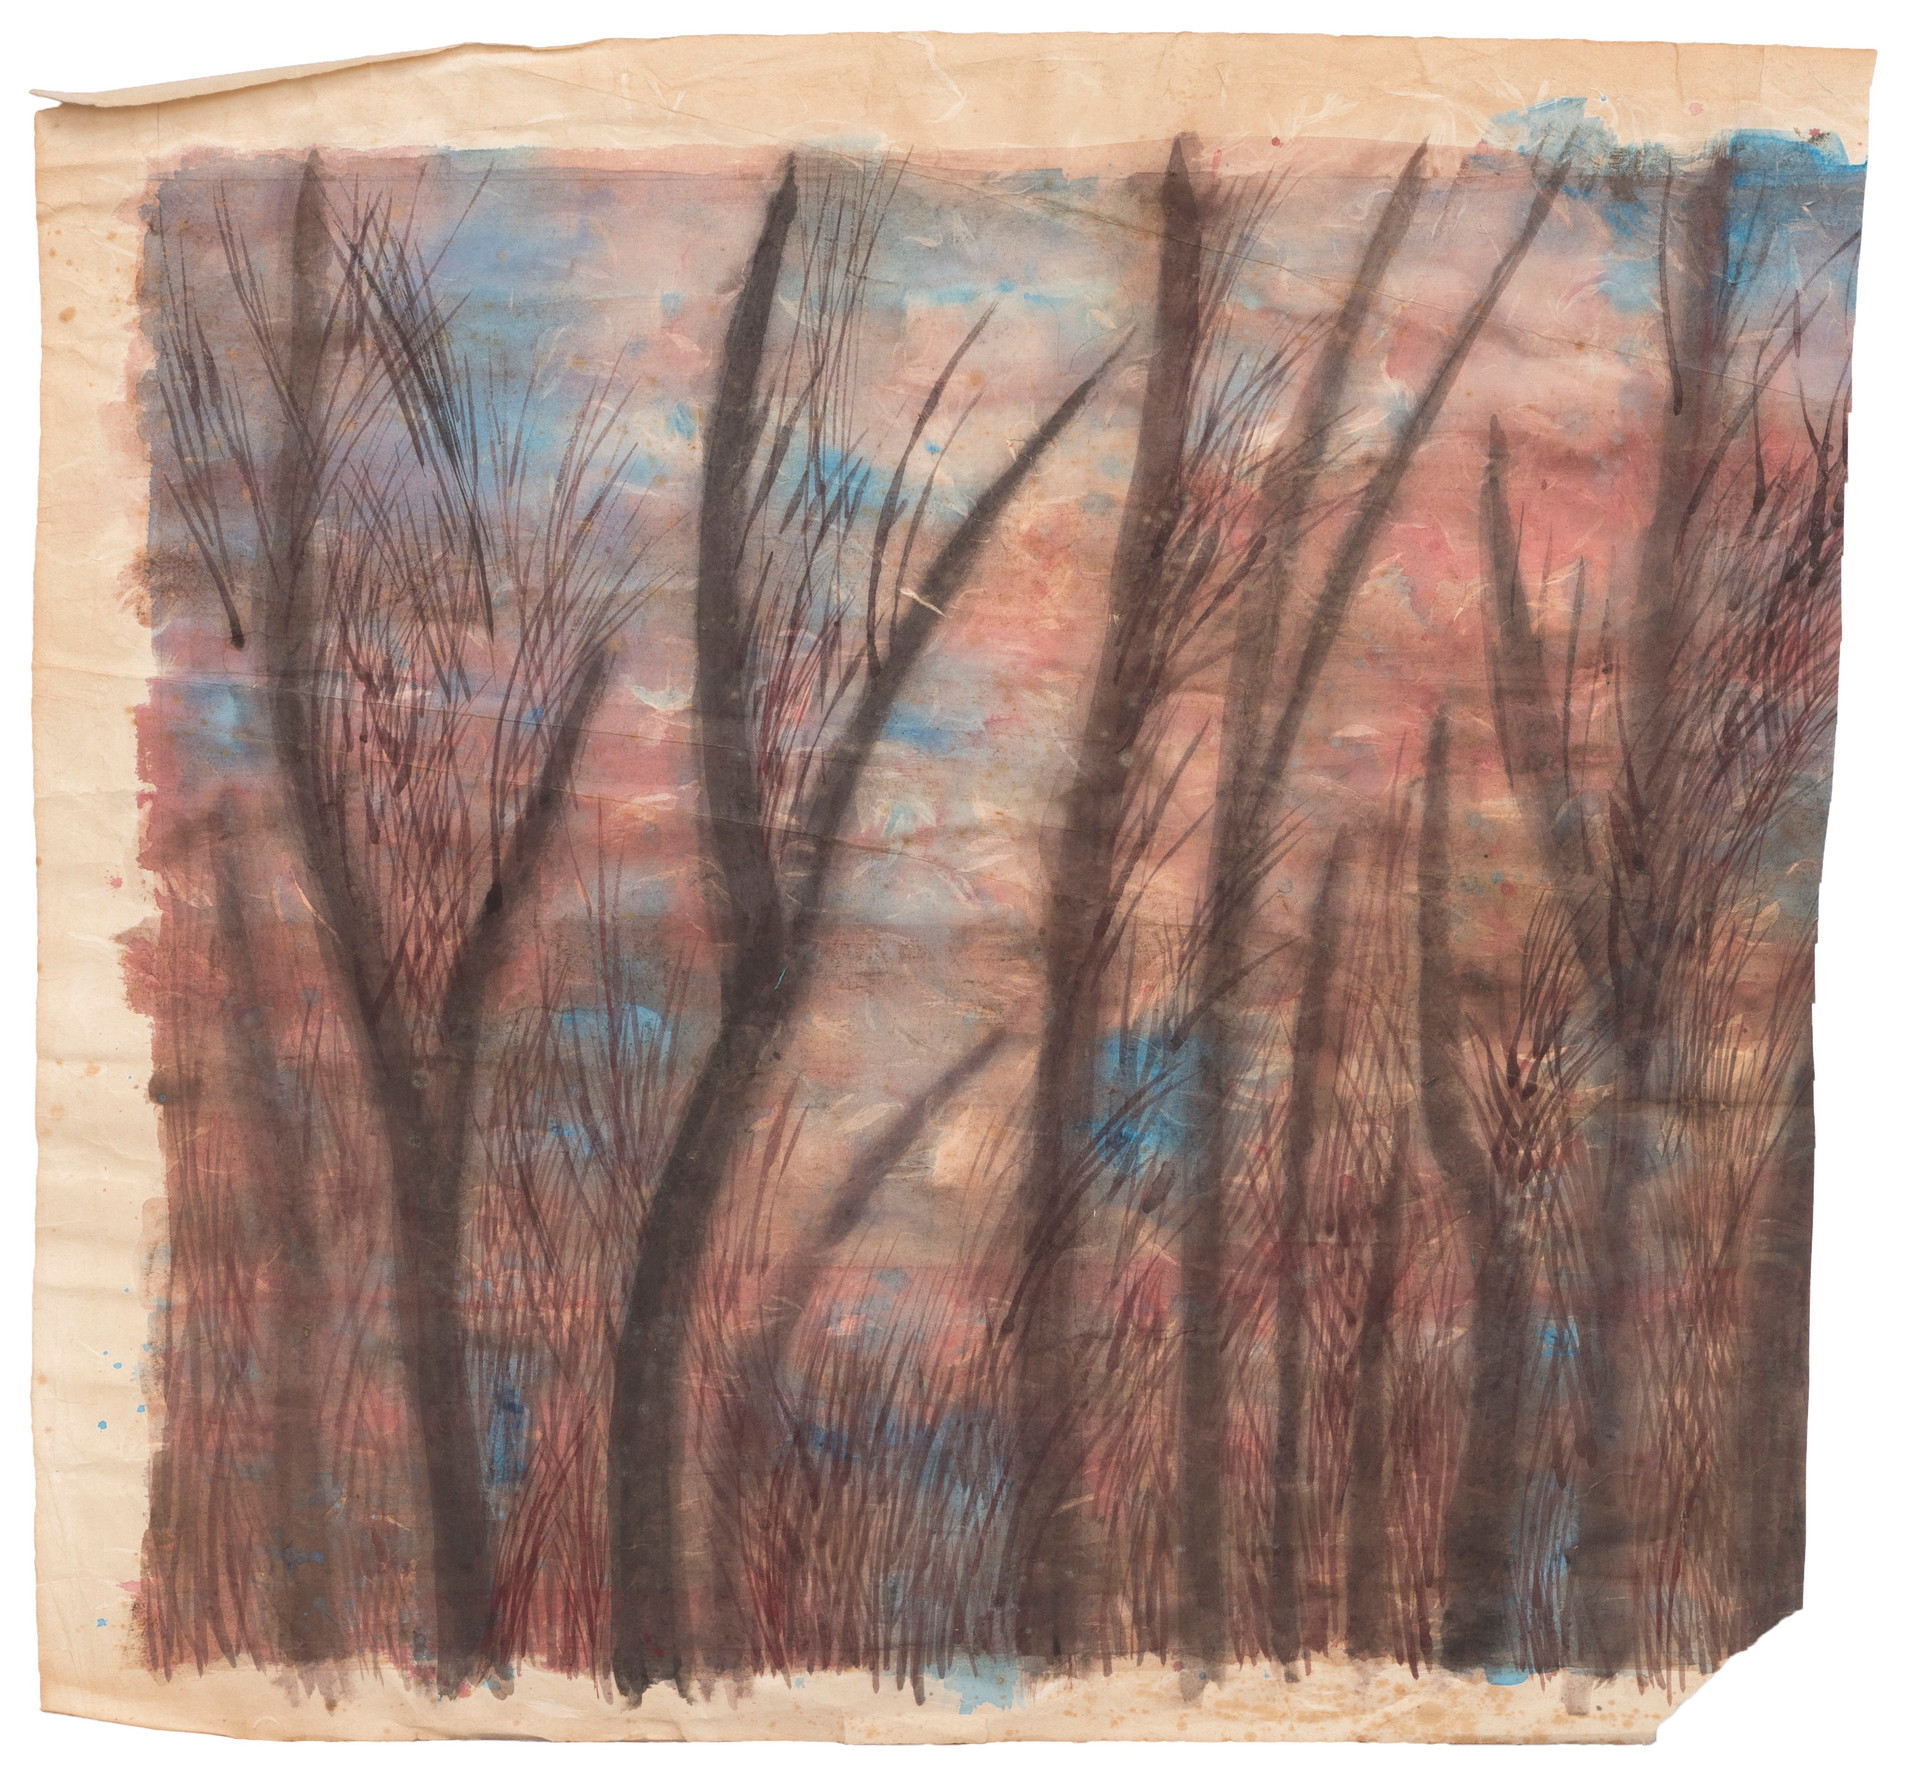 Untitled - brown trees on pink and blue background